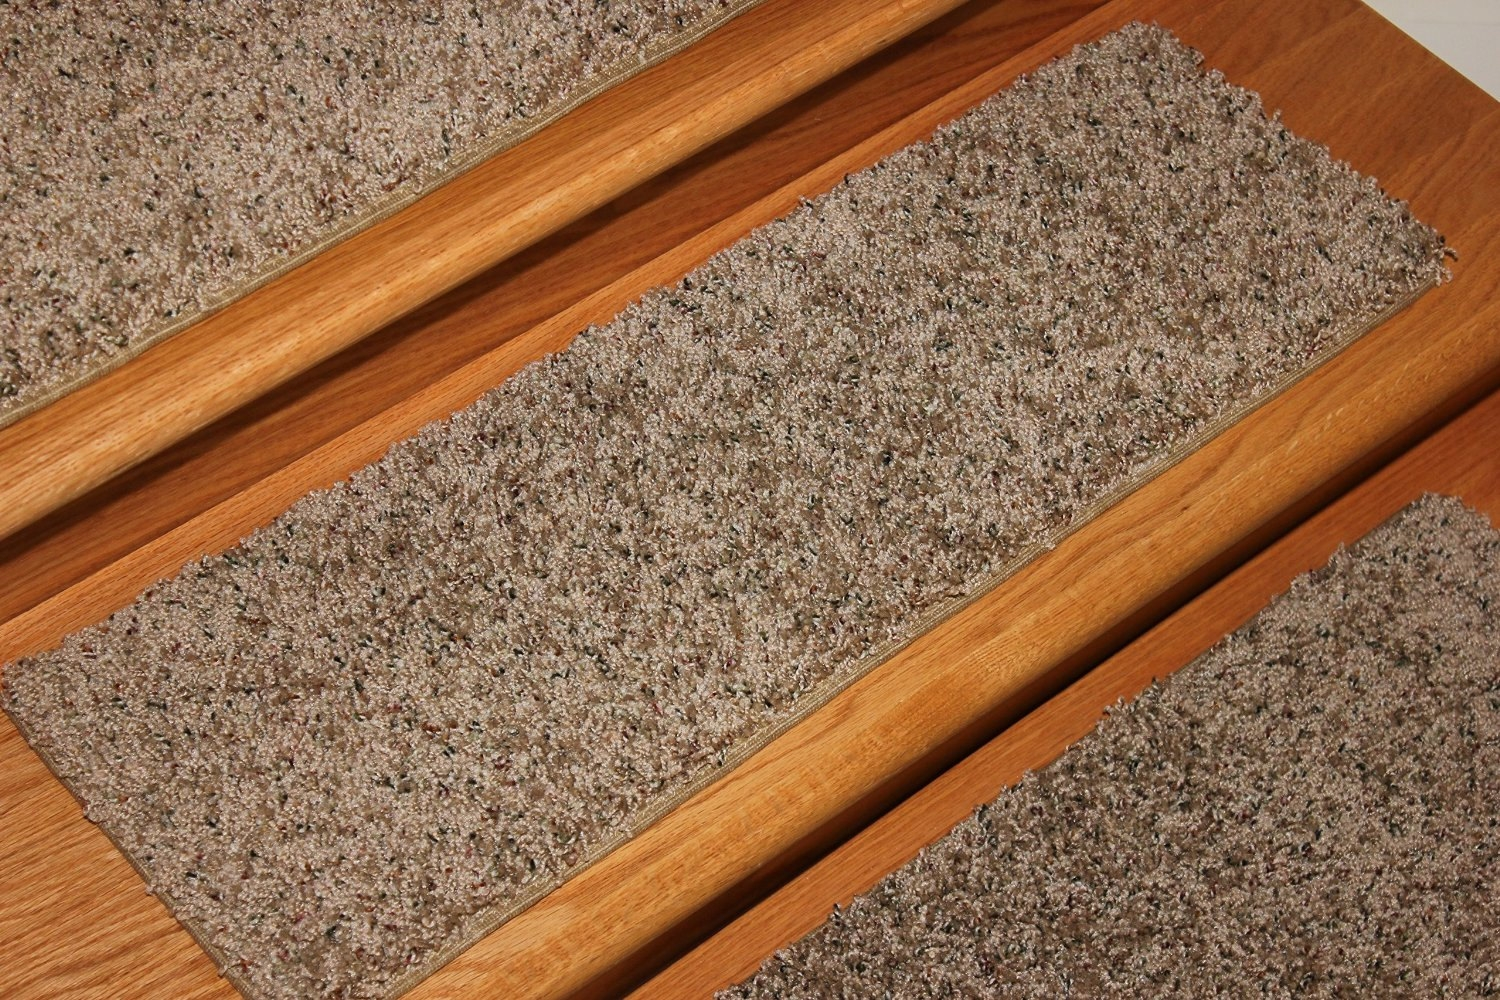 Stair Treads Etsy For Rustic Stair Tread Rugs (Image 15 of 15)